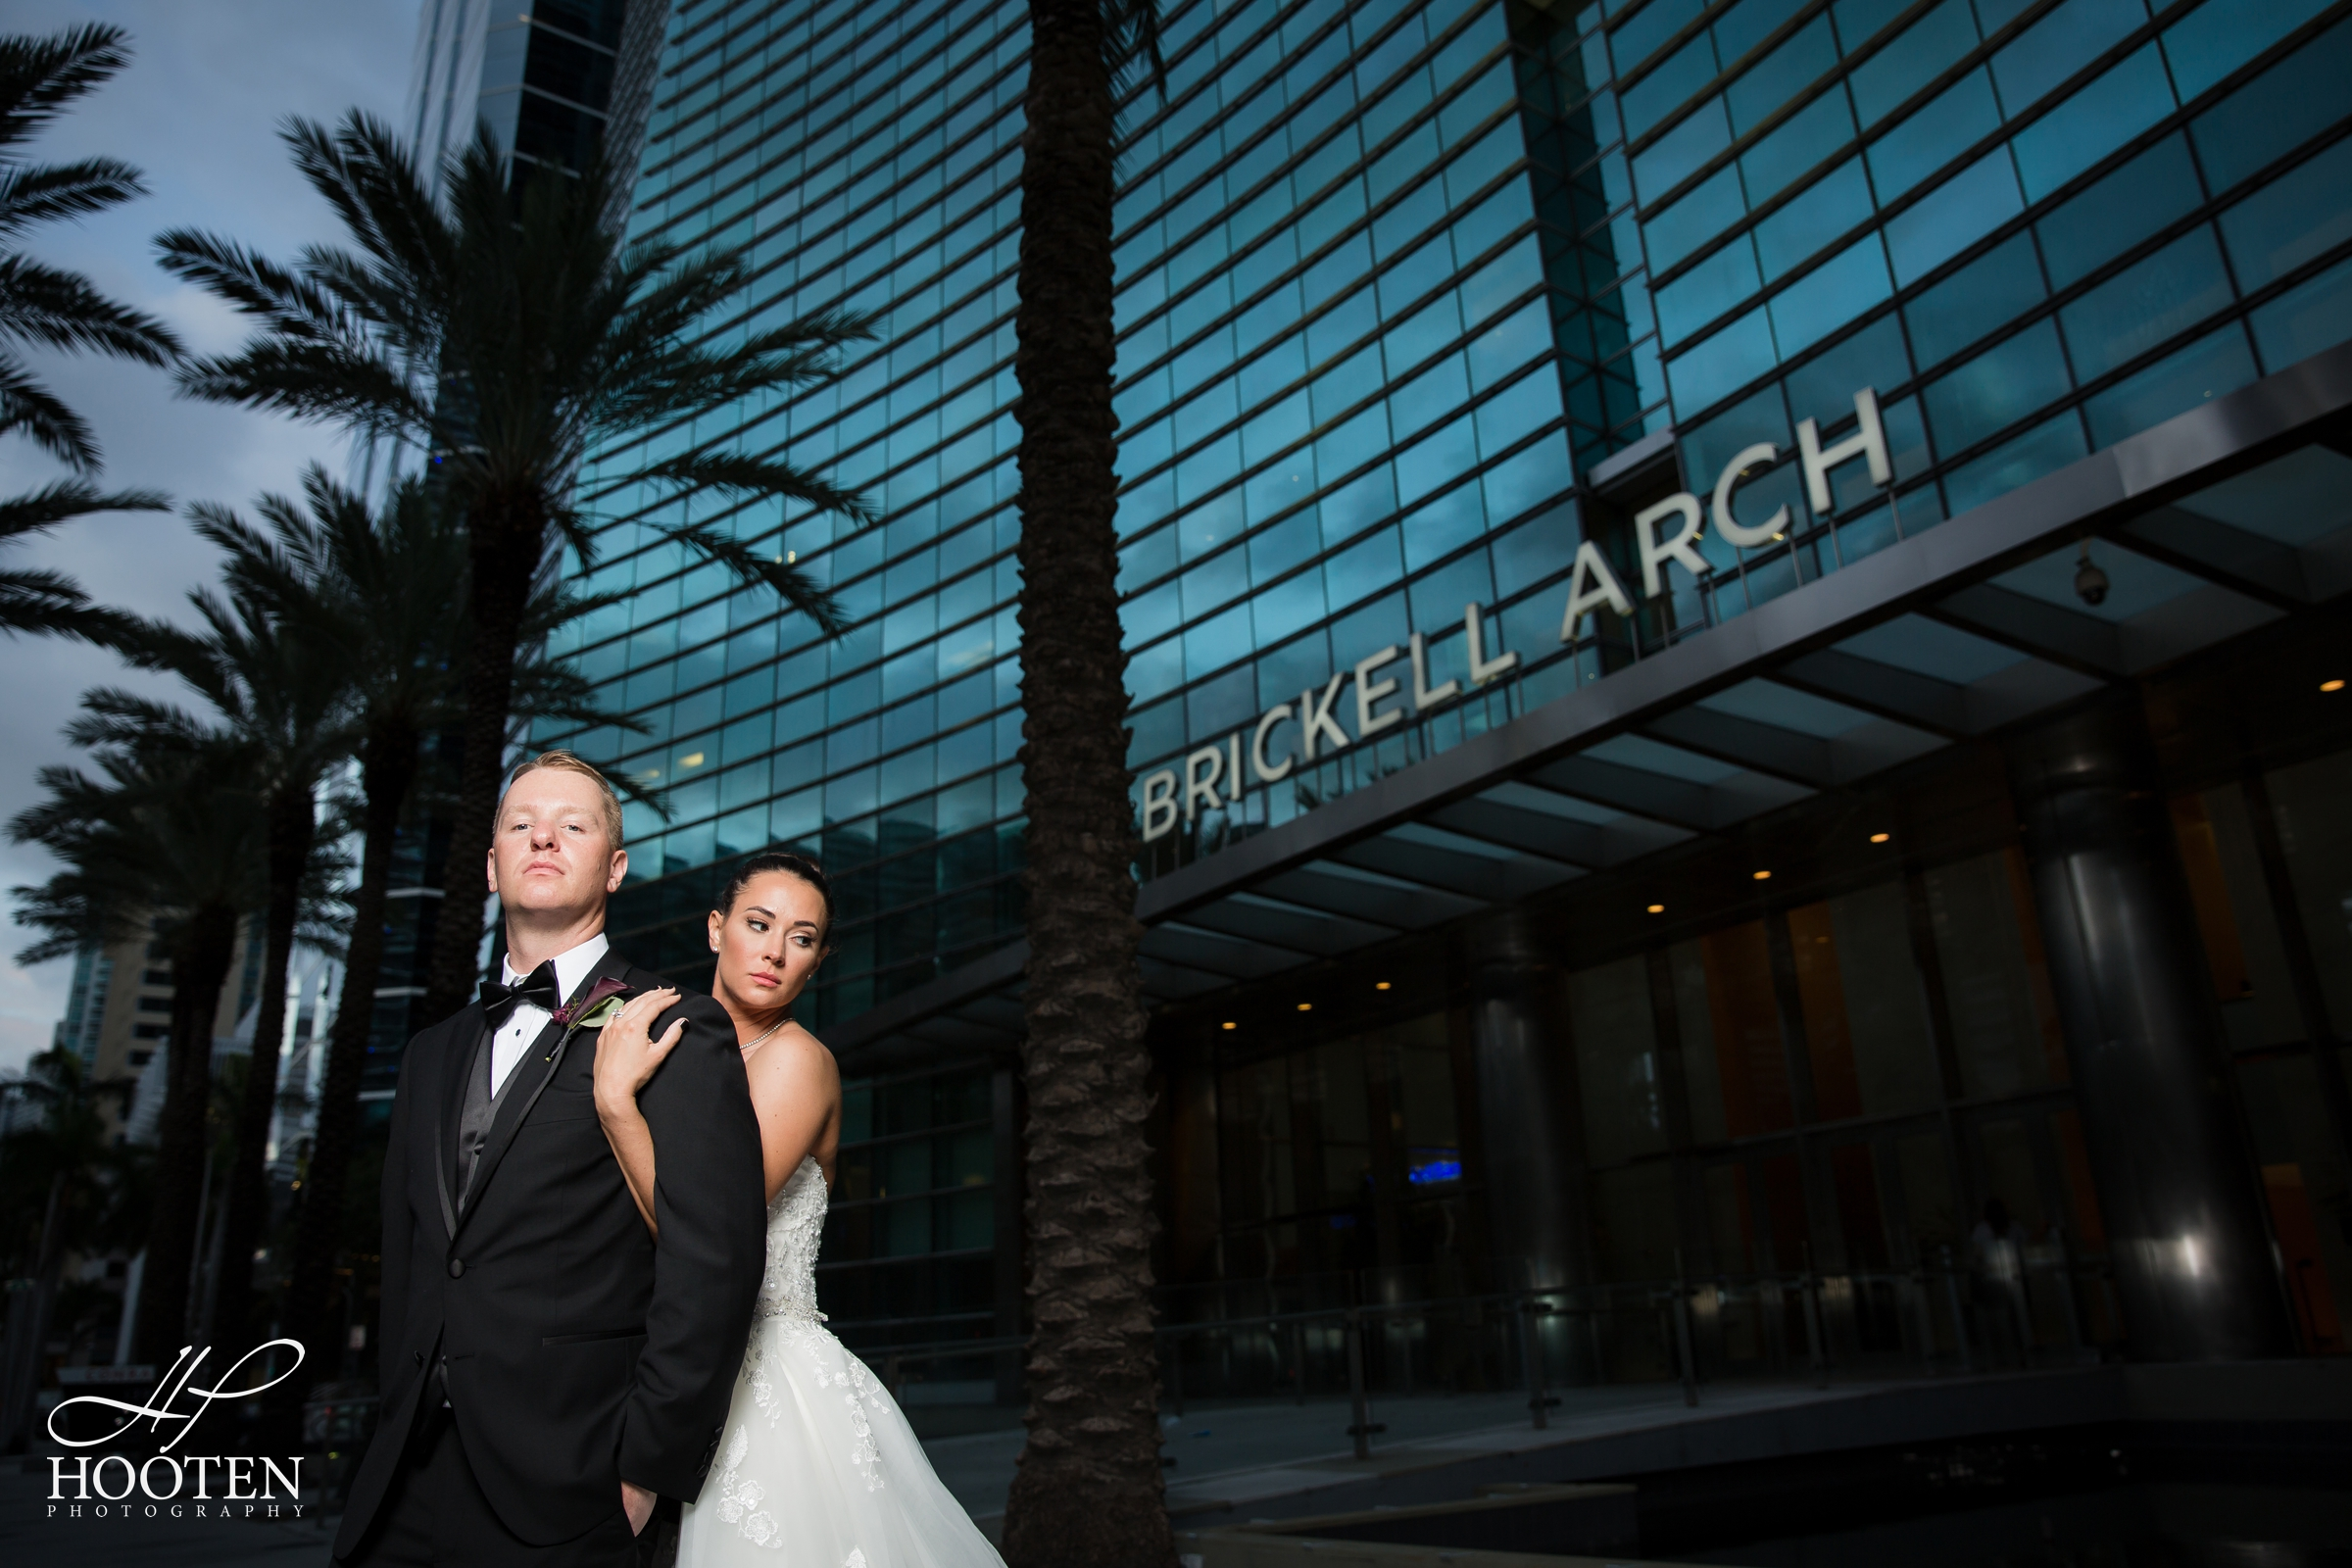 066.Conrad-Miami-Hotel-Wedding-Hooten-Photography.jpg